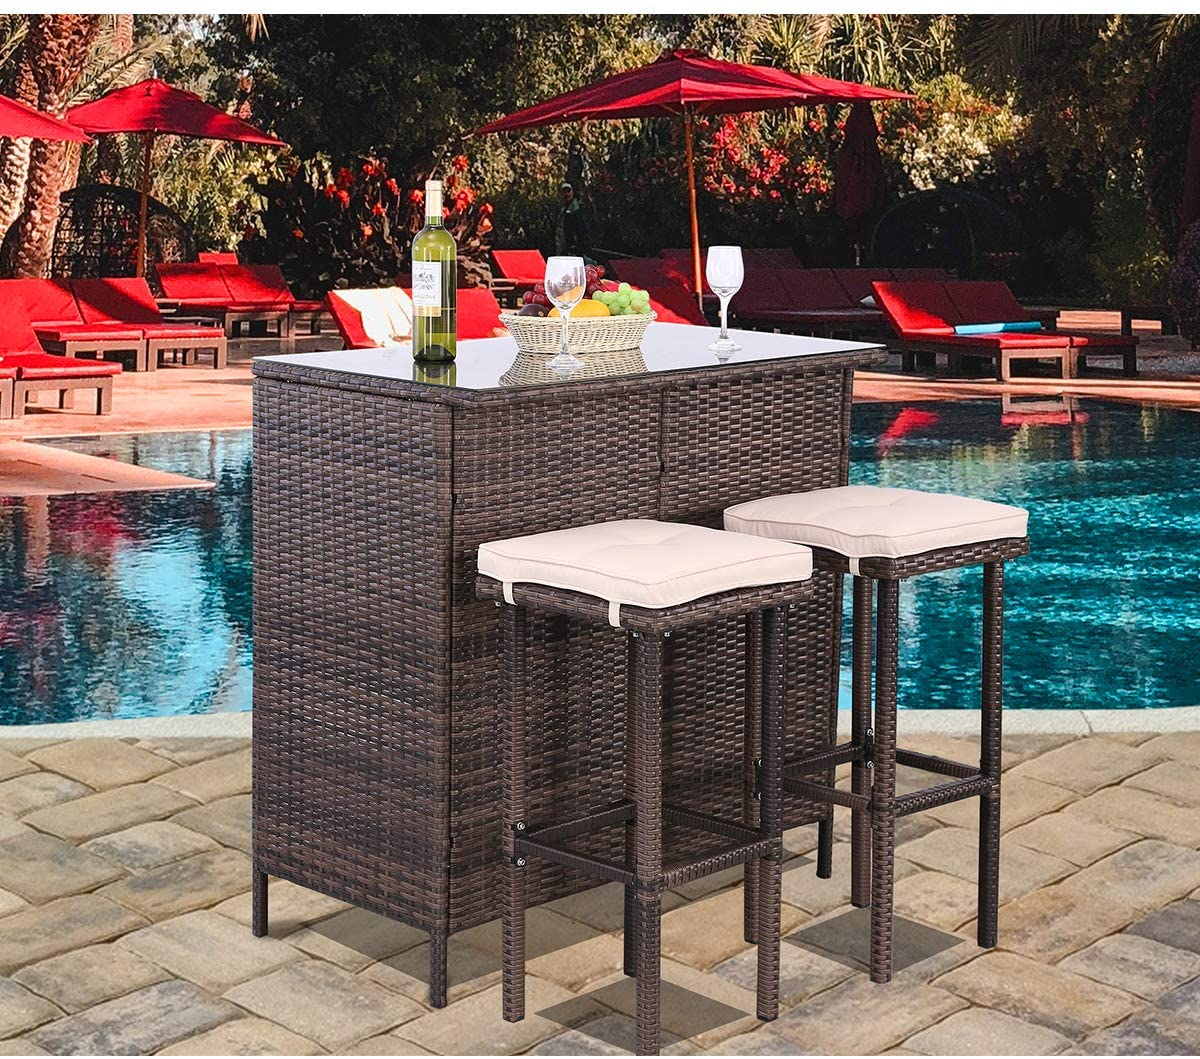 polar aurora 3pcs patio bar set with stools and glass top table patio wicker outdoor furniture with beige removable cushions for backyards porches